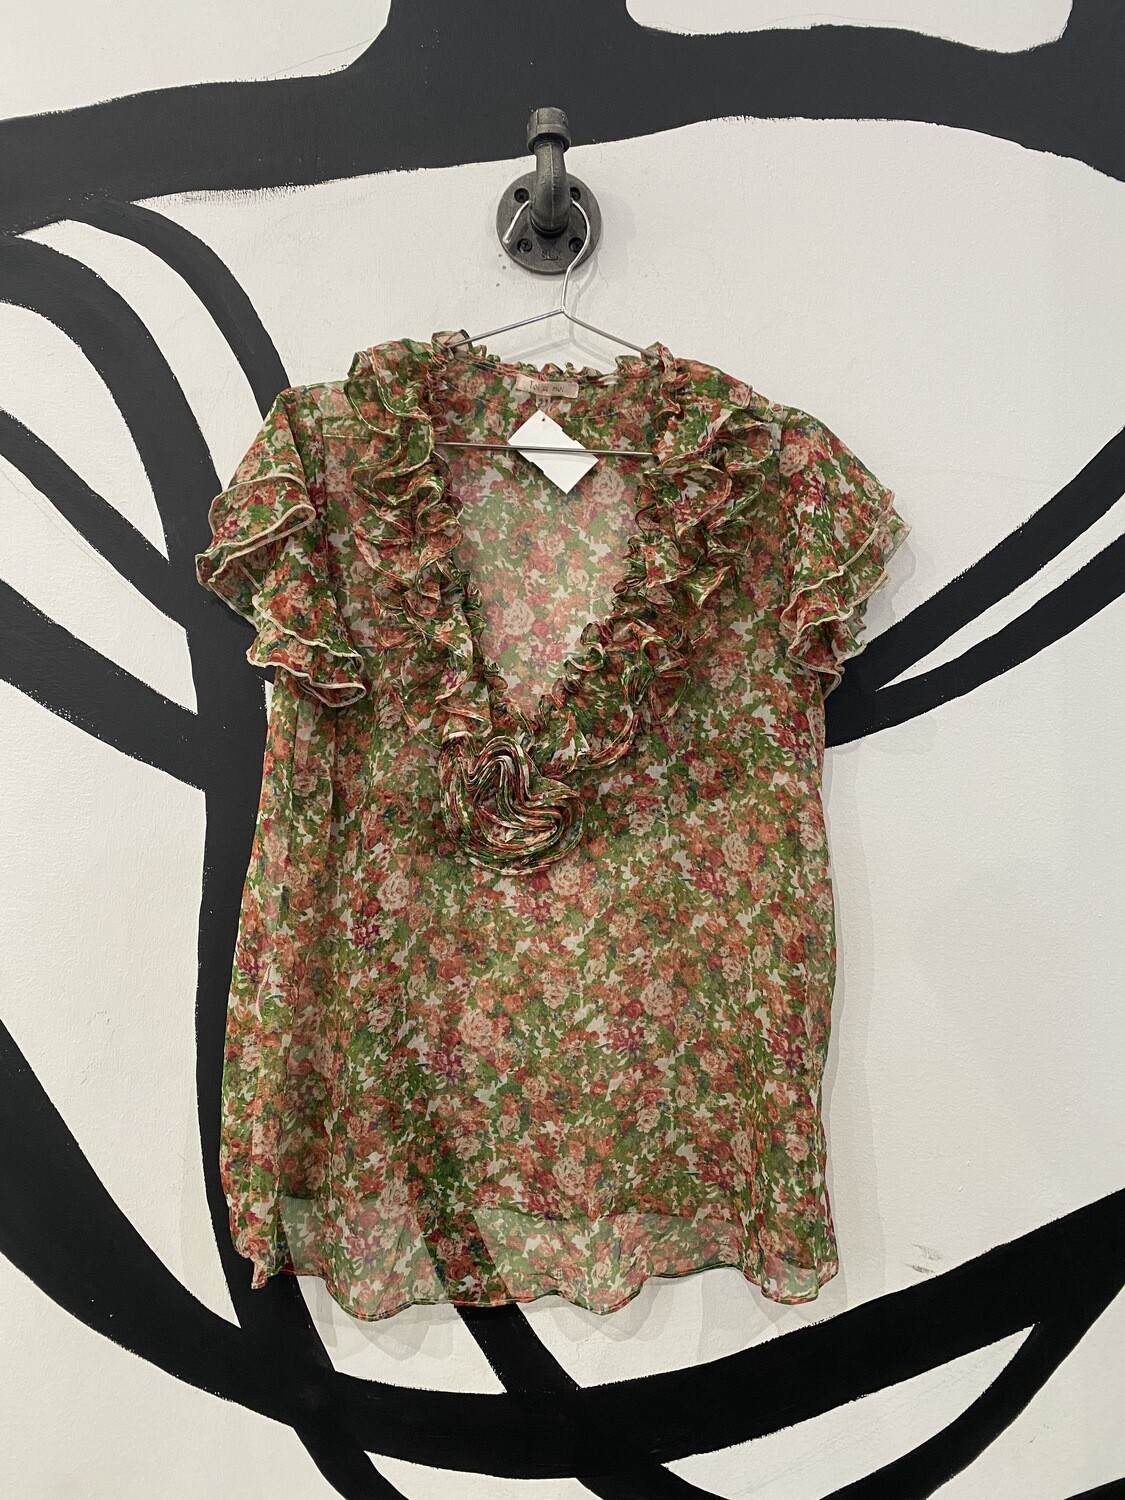 Toi et Moi Sheer Multicolored Floral Print Blouse with Ruffle Collar and Sleeves - Size M